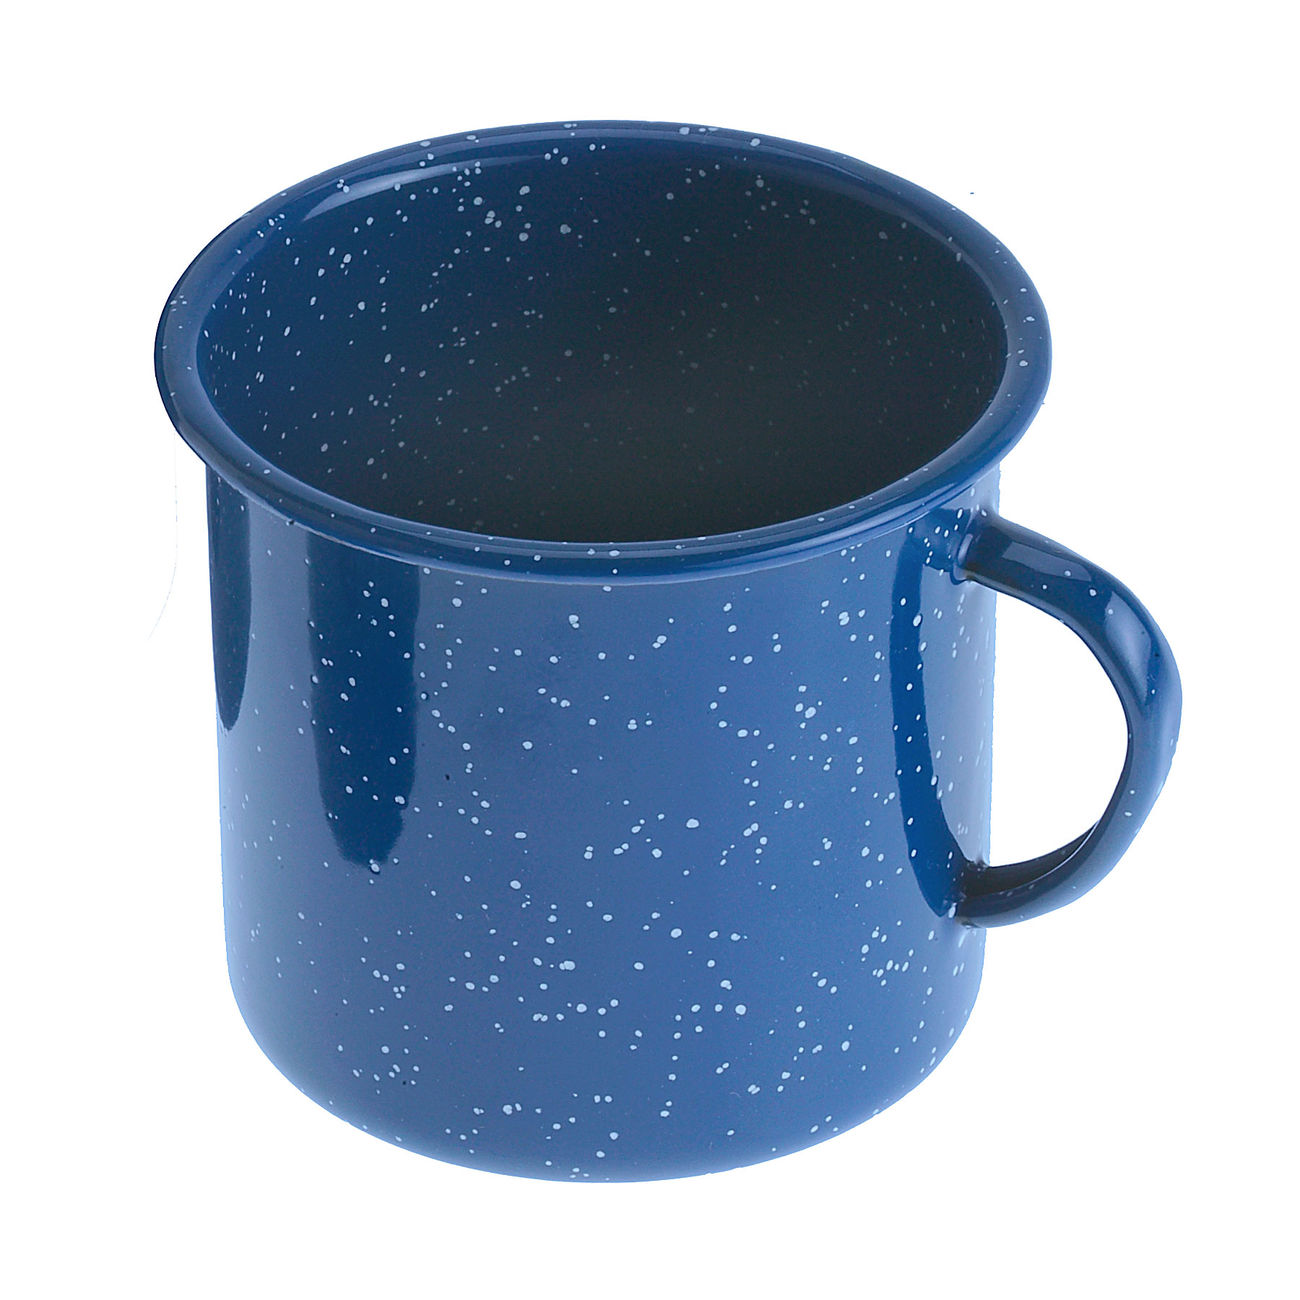 GSI Tasse Emaille 700 ml blau 0